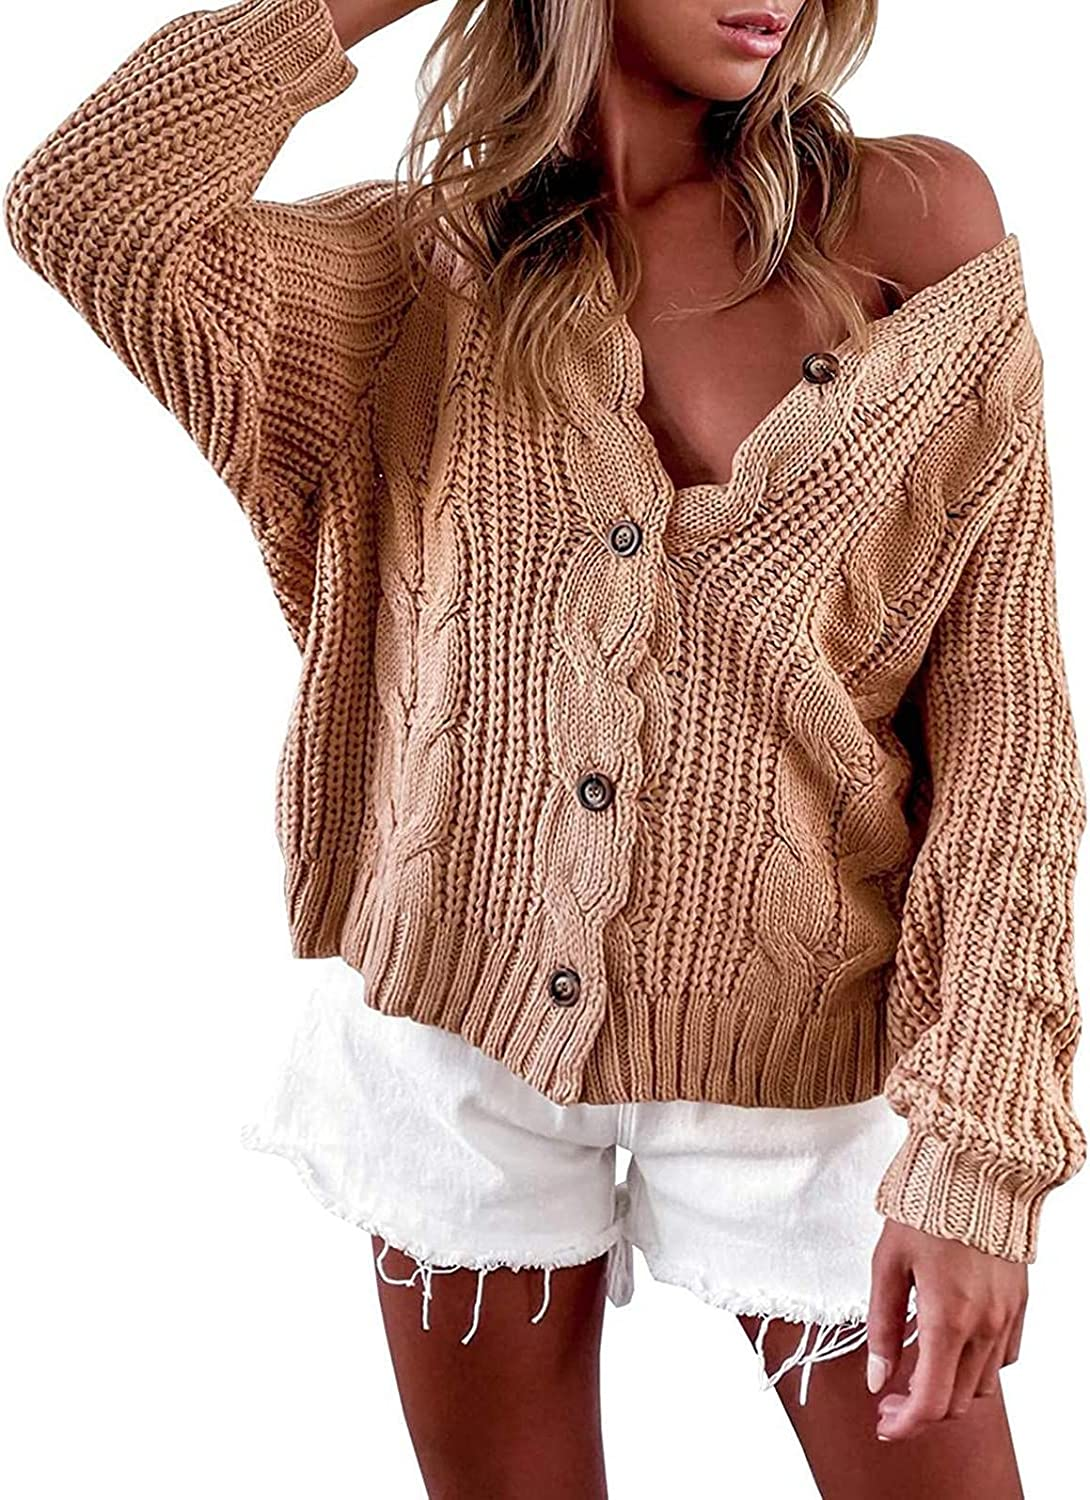 Gibobby Sweaters for Women,Women's Oversized Sweaters V Neck Long Sleeve Casual Blouses Knitted Pullover Button Outwear